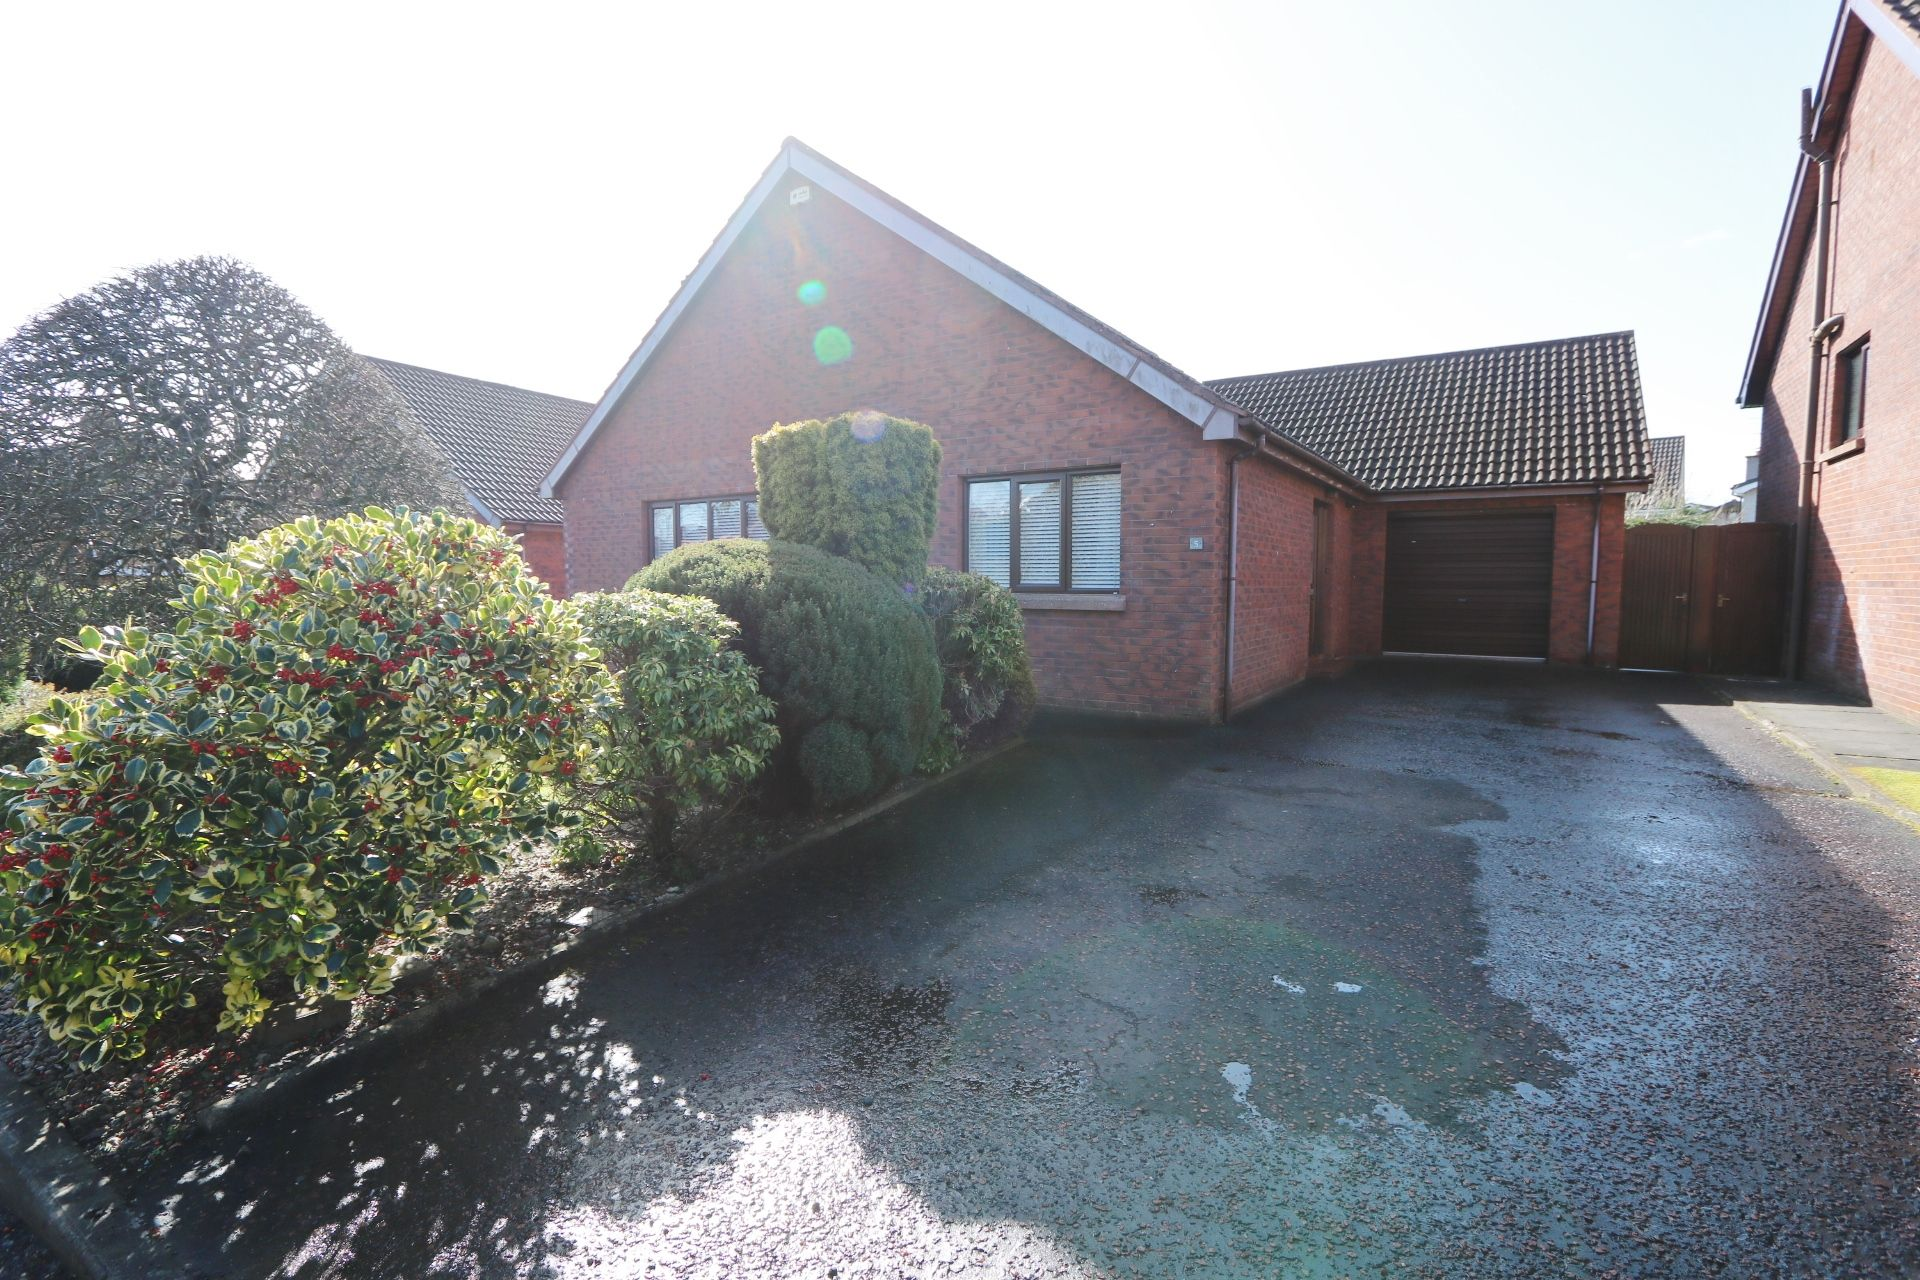 2 bedroom detached bungalow For Sale in Ballymena - Property photograph